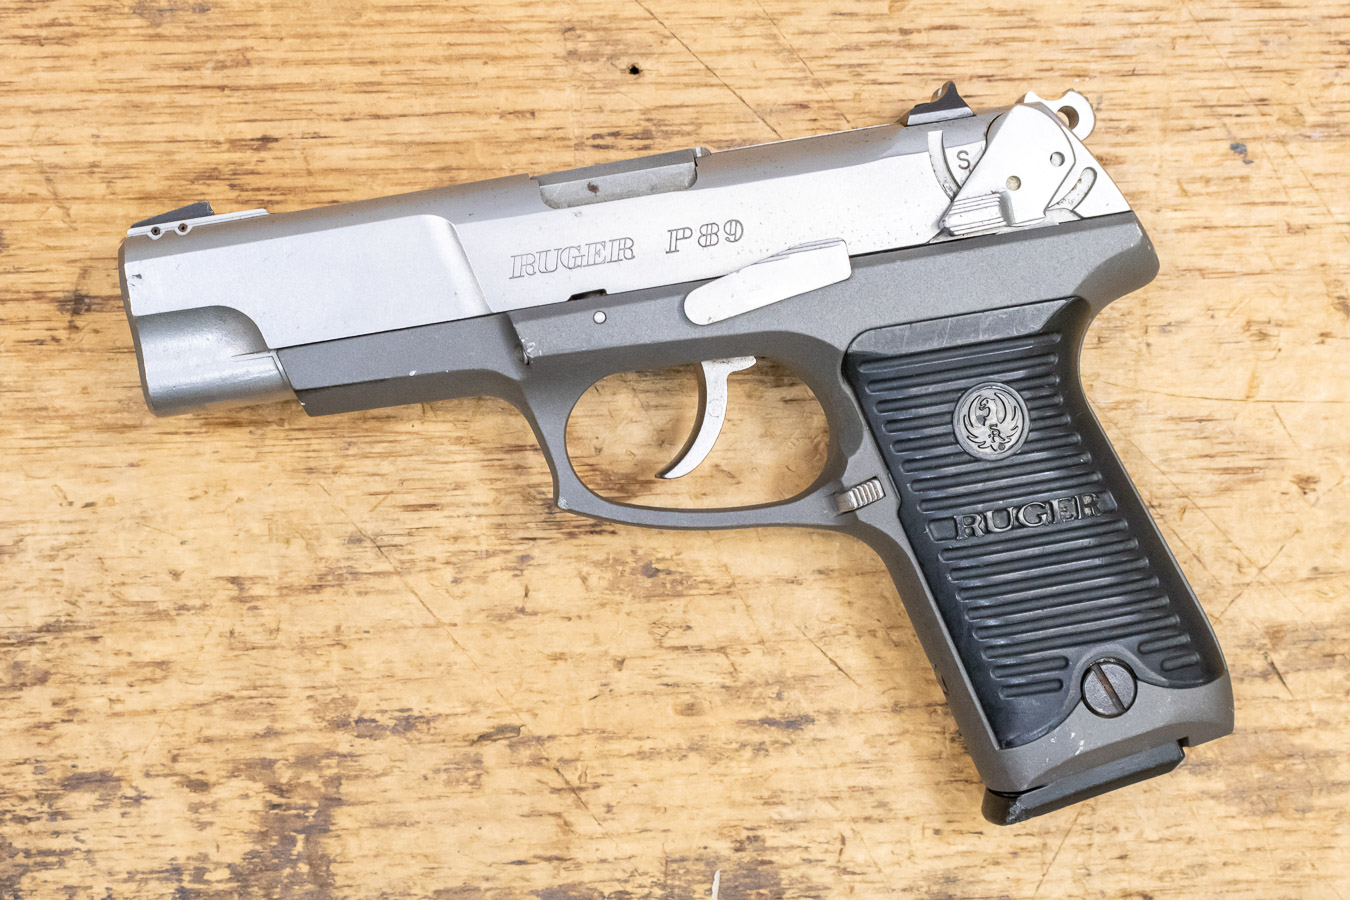 Ruger p89 manufacture date